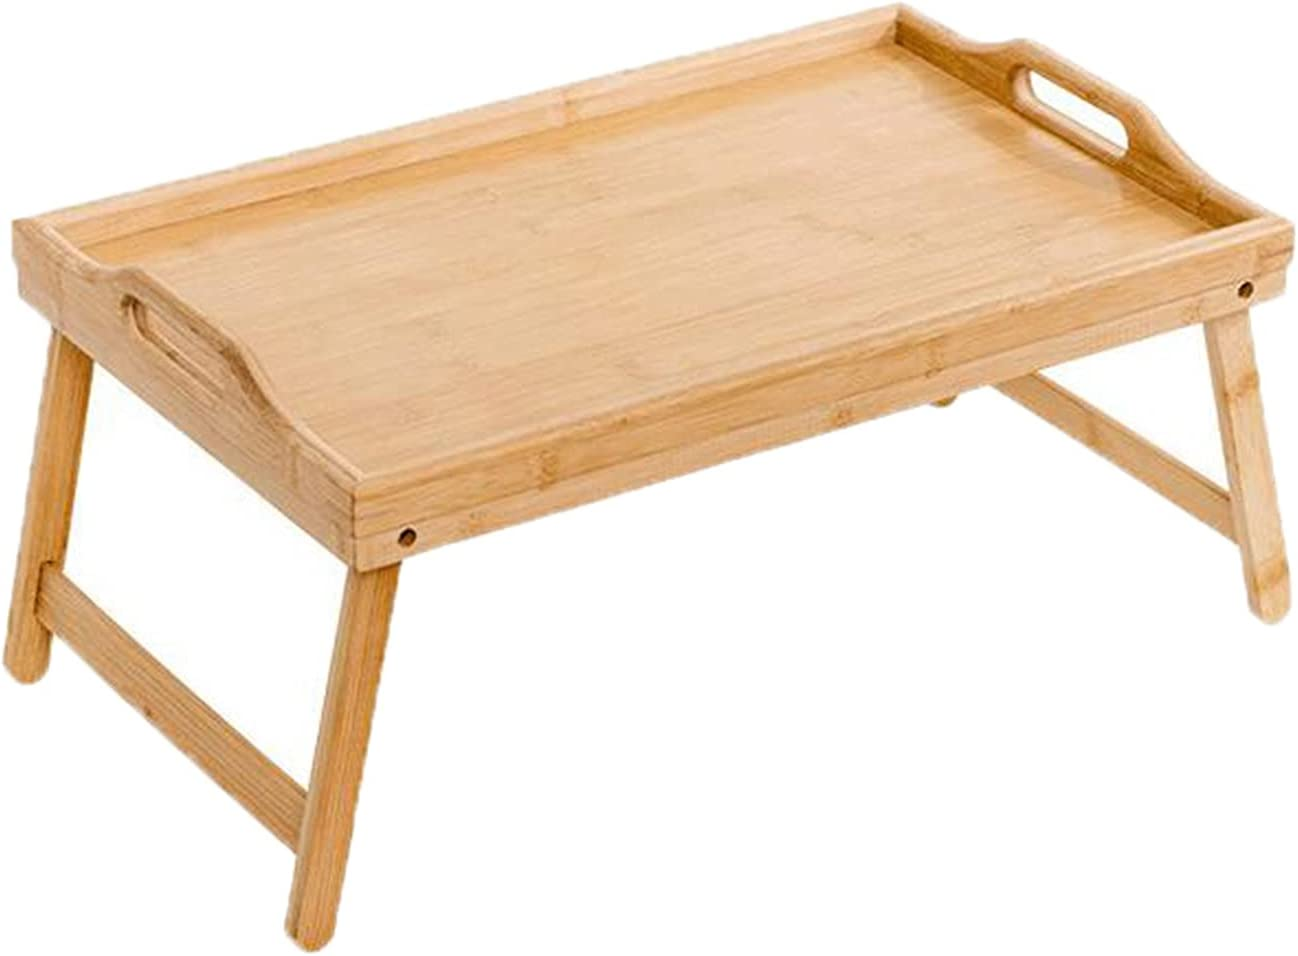 PIVTXRQS Bedstablet Bamboo Serving Over item handling Tray Legs with Break Folding Max 86% OFF